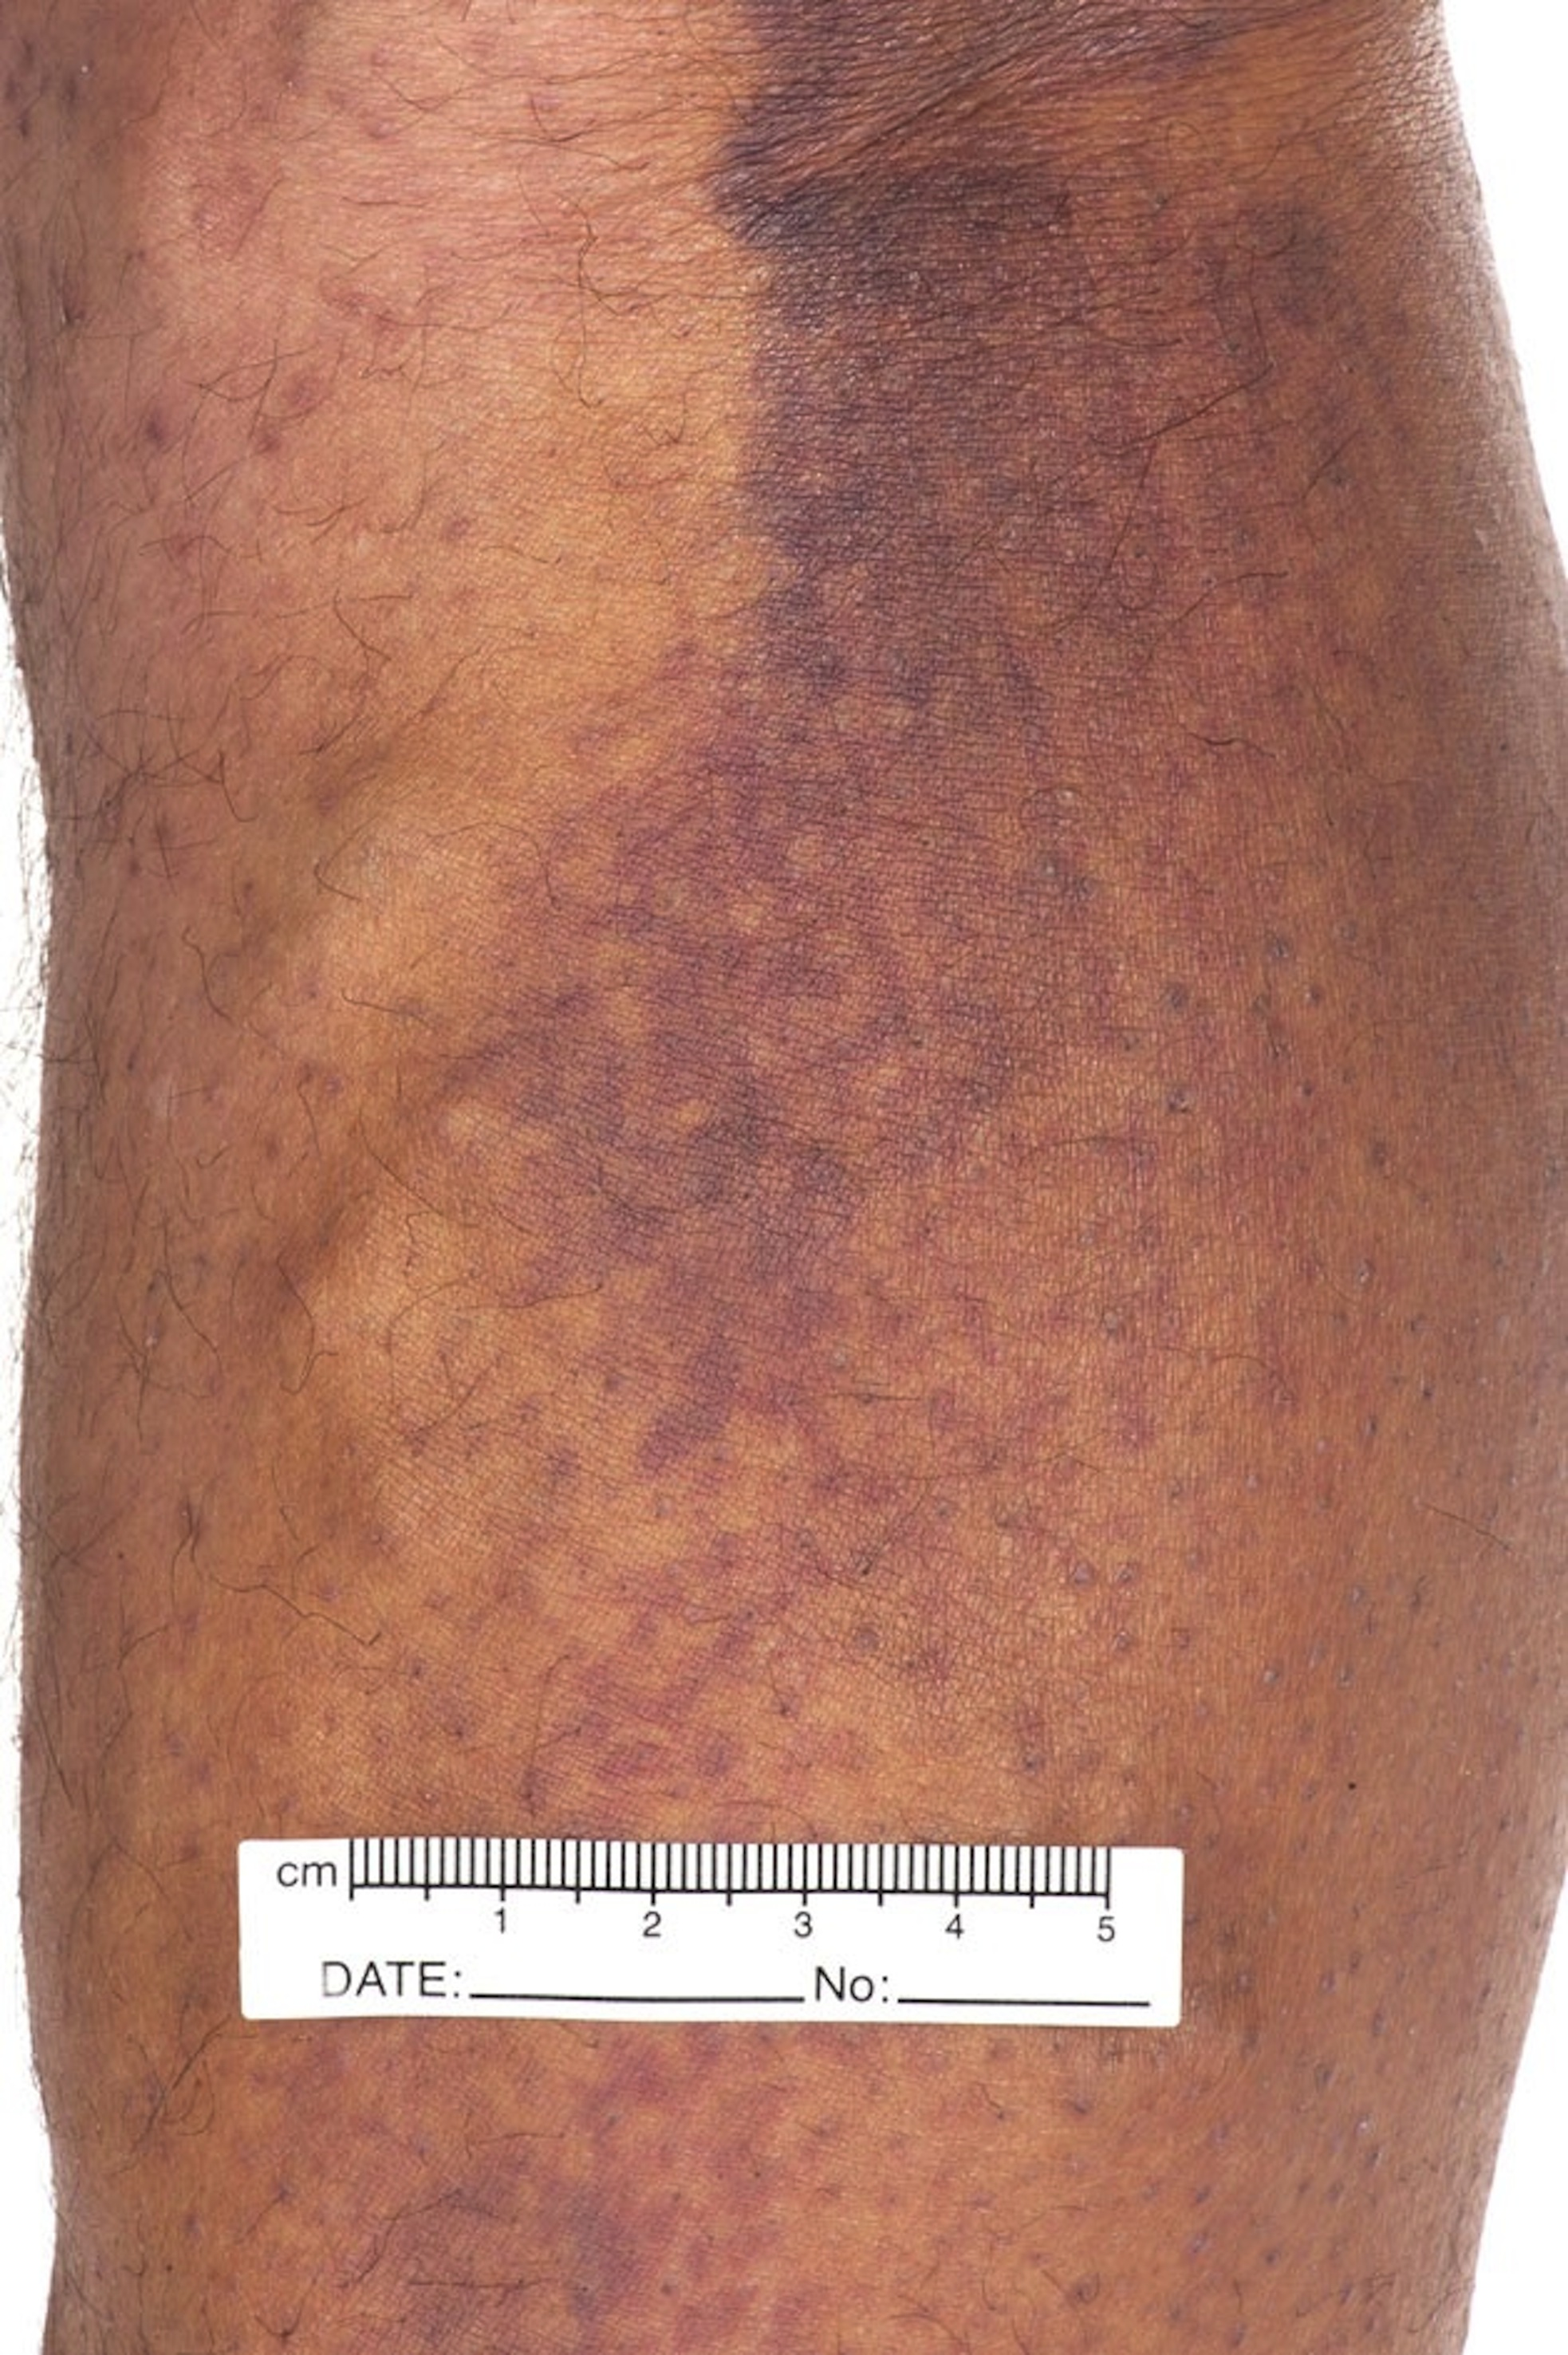 RACGP - A rare cause of petechial rash in the 21st century